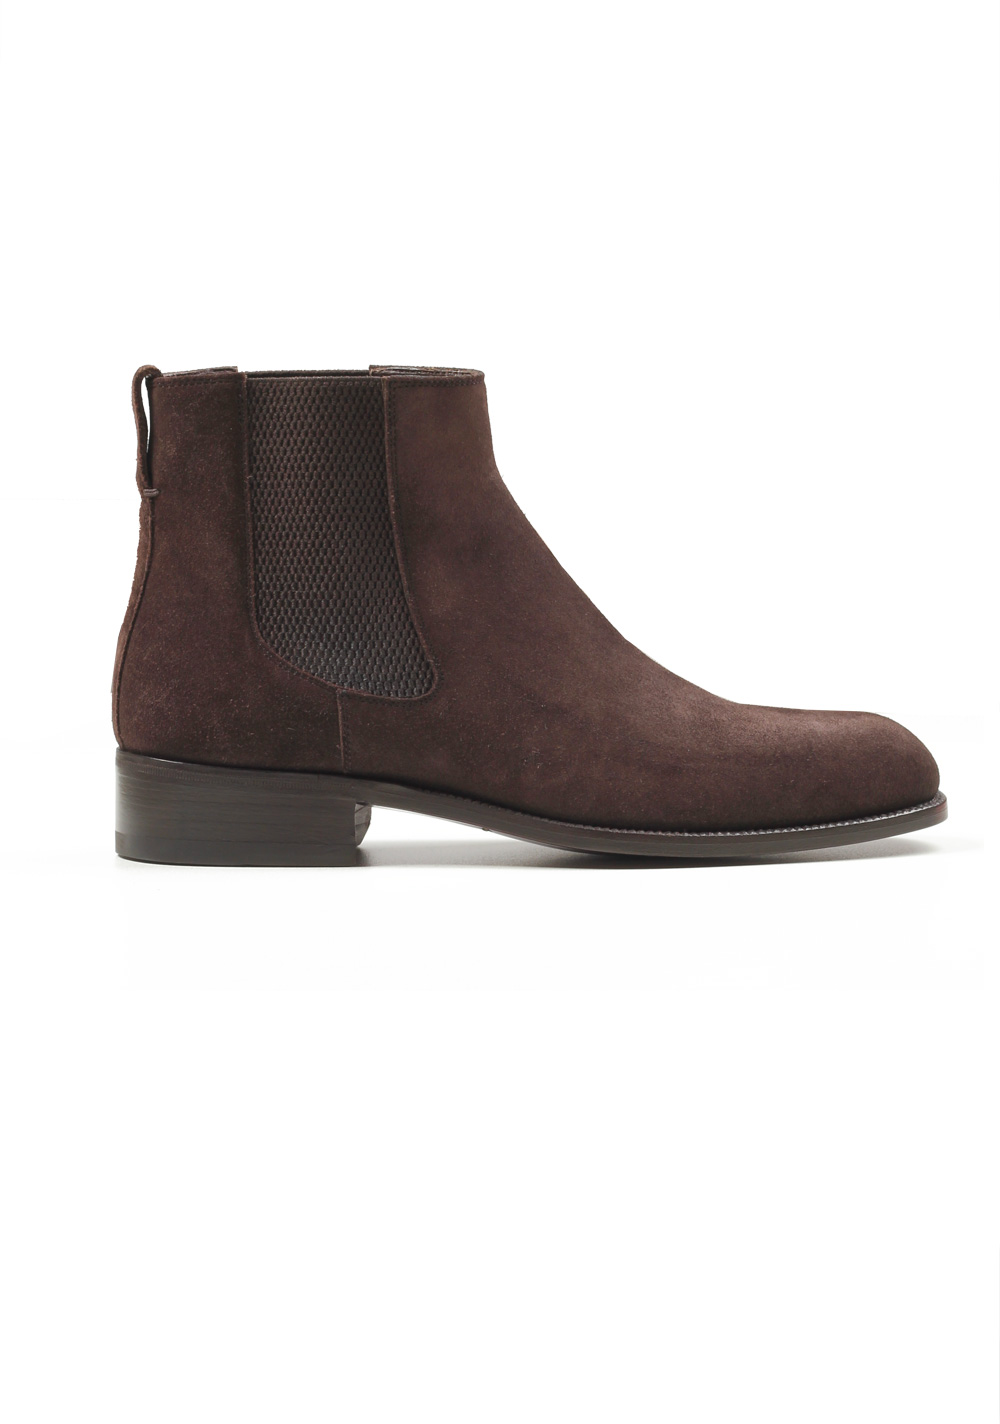 035857aaa New TOM FORD Wilson Brown Suede Chelsea Boots Shoes Size 8 UK / 9 ...